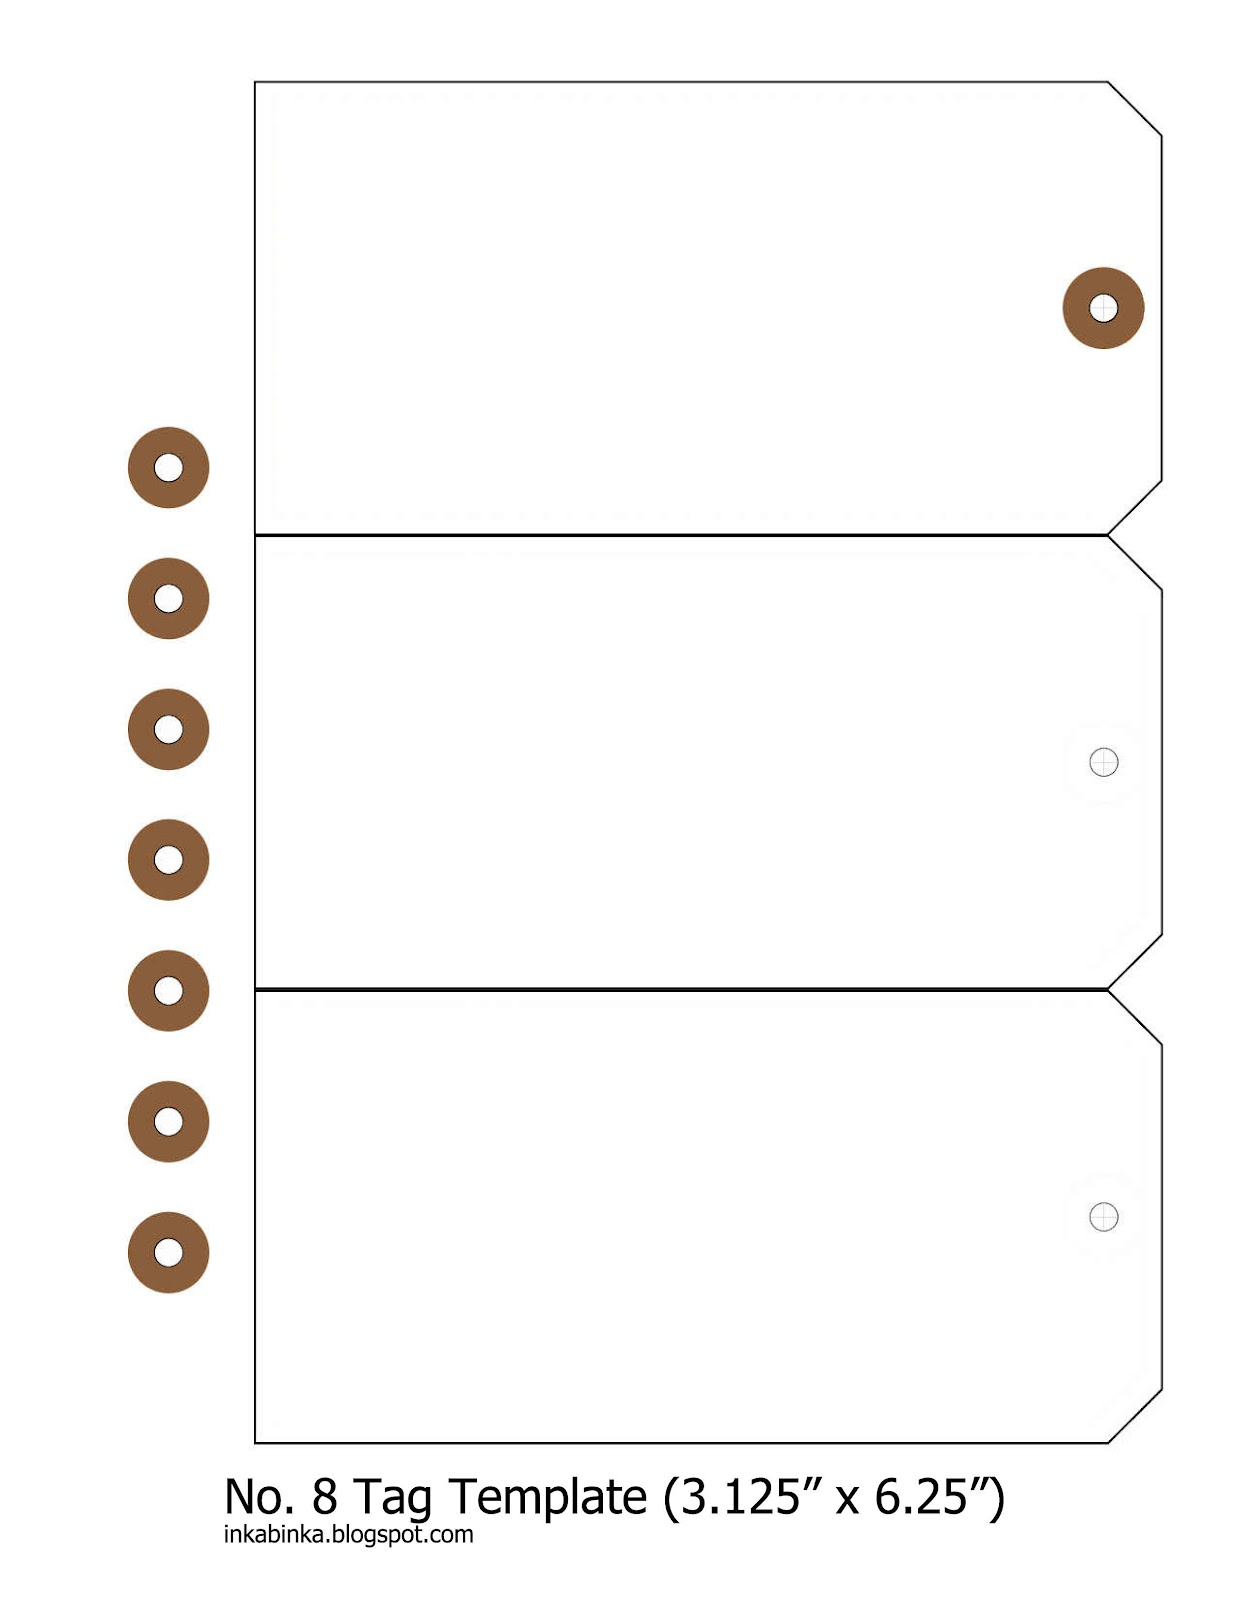 Tag Template Free Template for #8 shipping tag